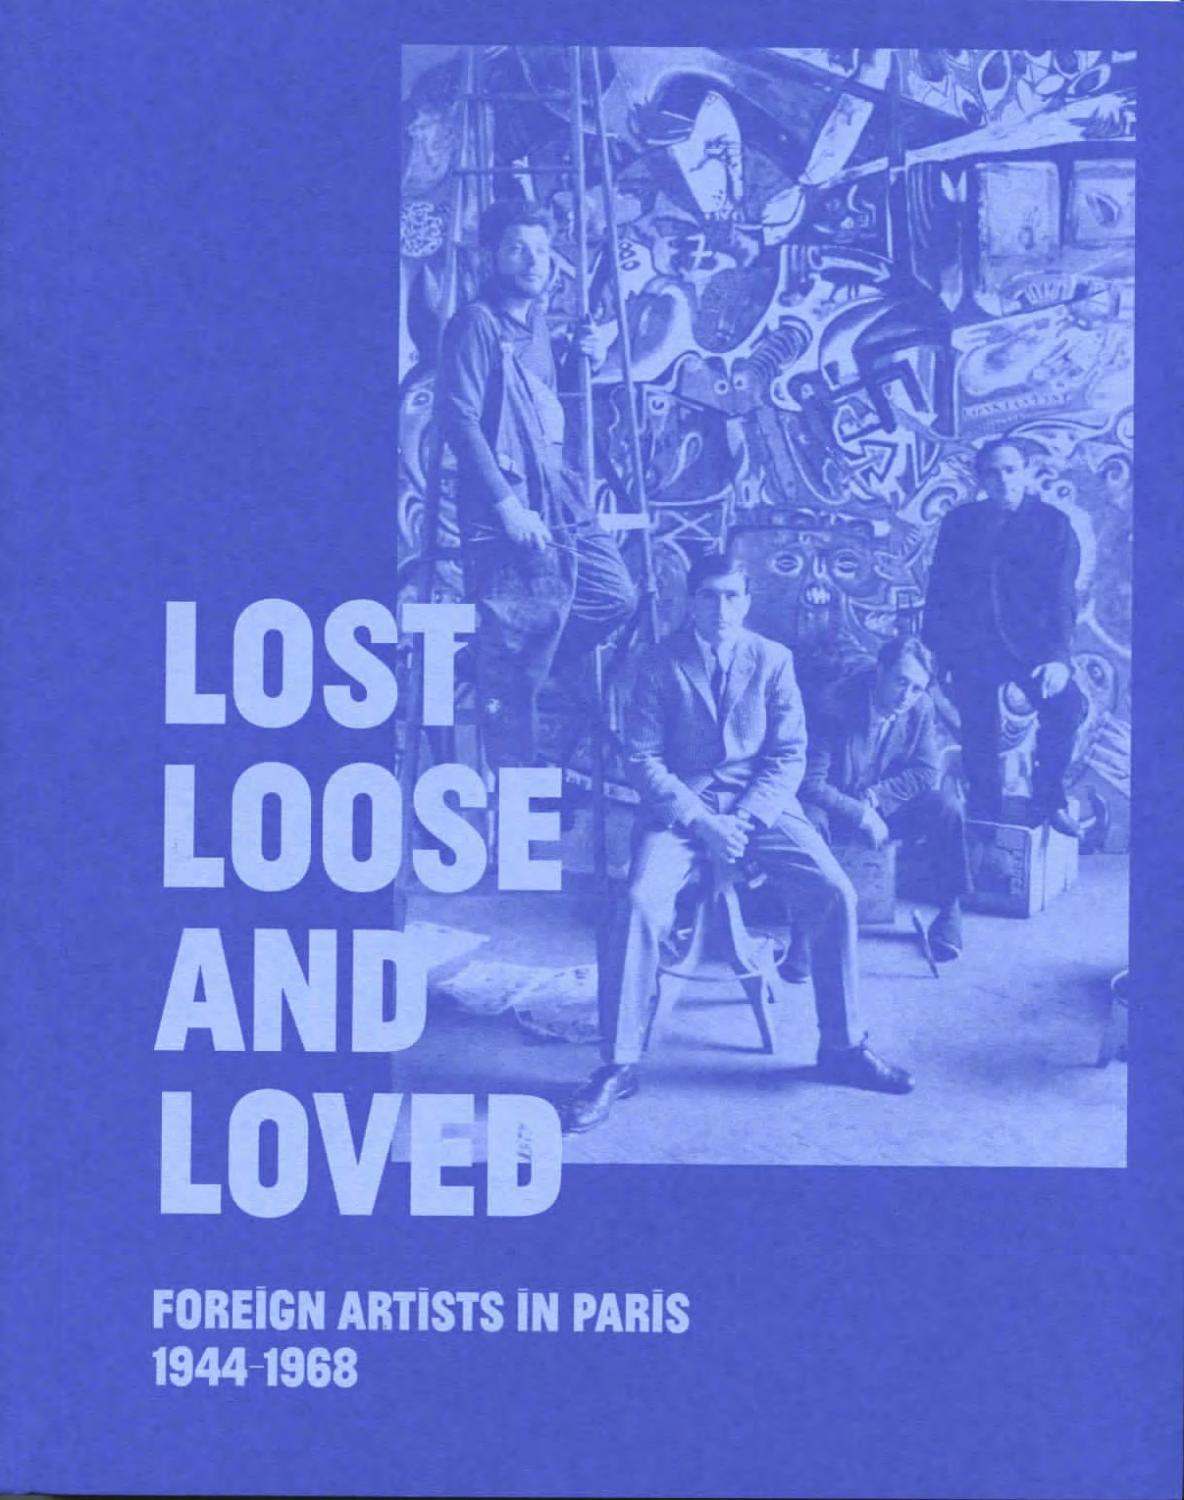 Lost Loose And Loved Foreign Artists In Paris 1944 1968 By Museo Reina Sofía Issuu